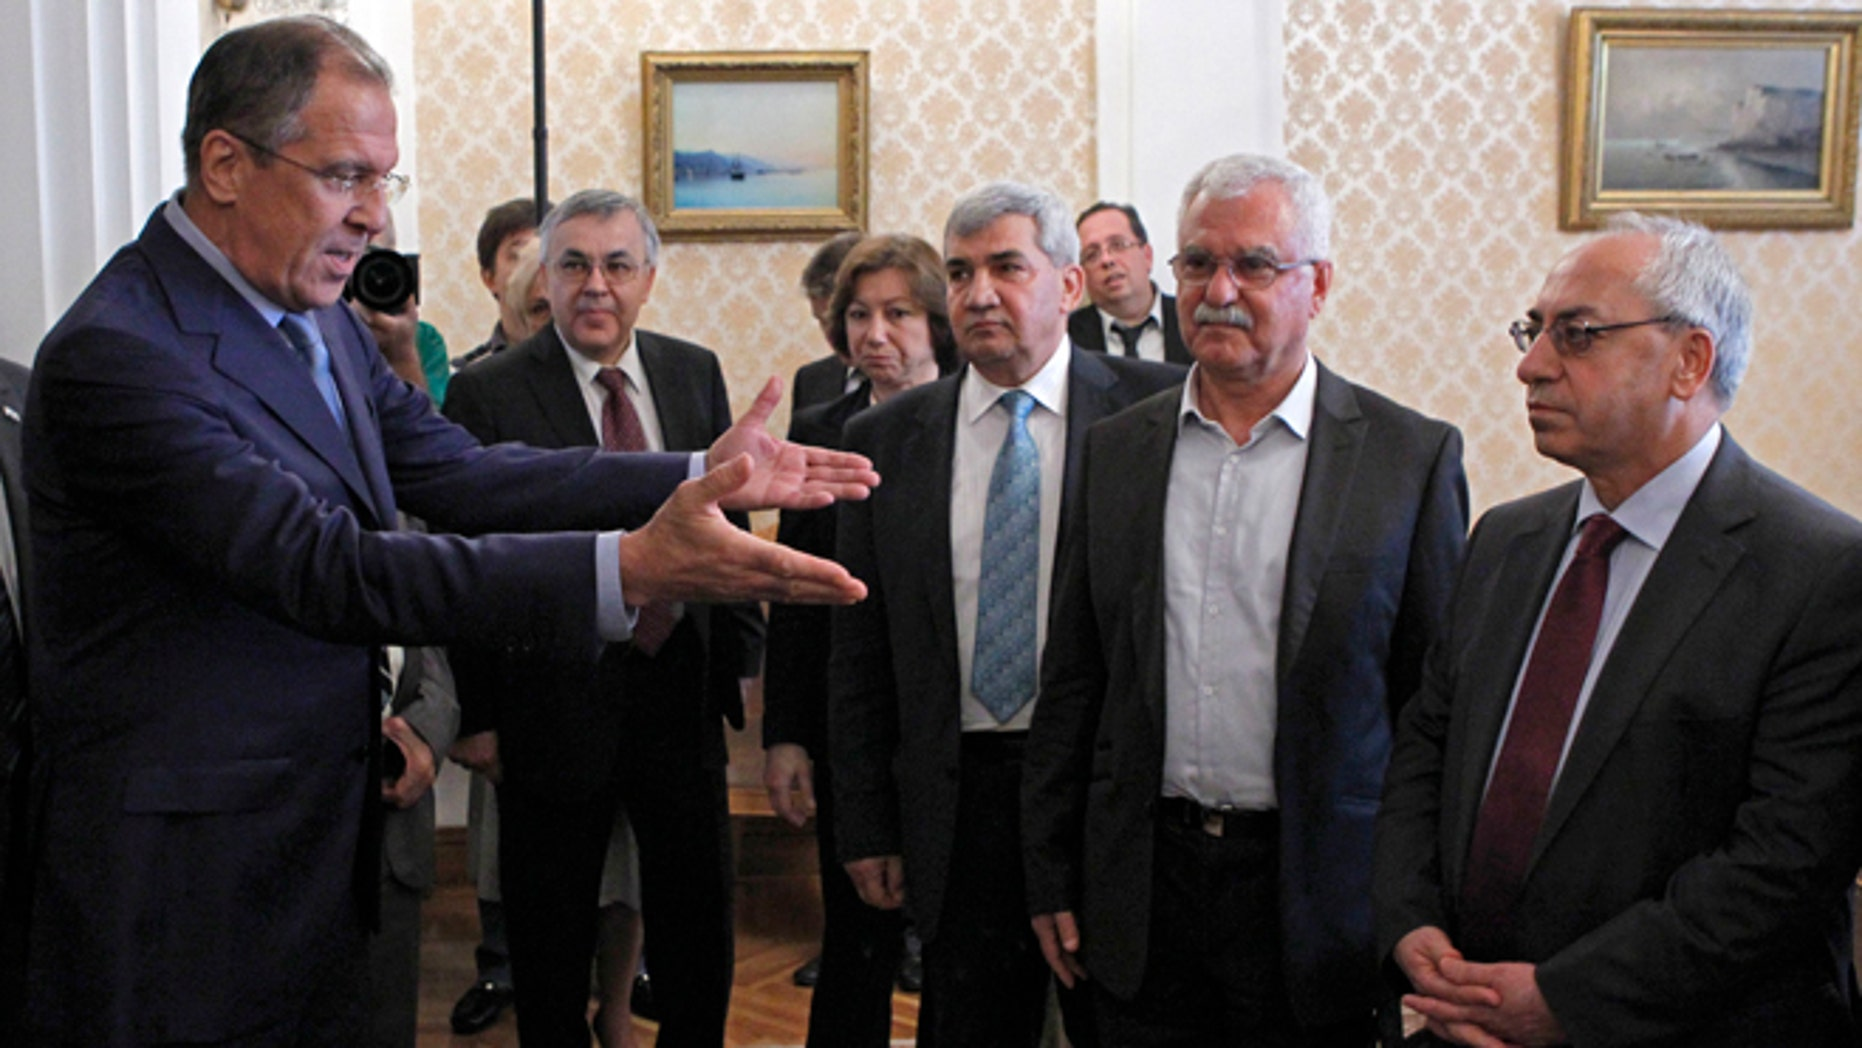 July 11, 2012: Russian Foreign Minister Sergey Lavrov, left, welcomes a delegation headed by a leader of the Syrian National Council (SNC), Abdulbaset Sieda, right, in Moscow, Russia.